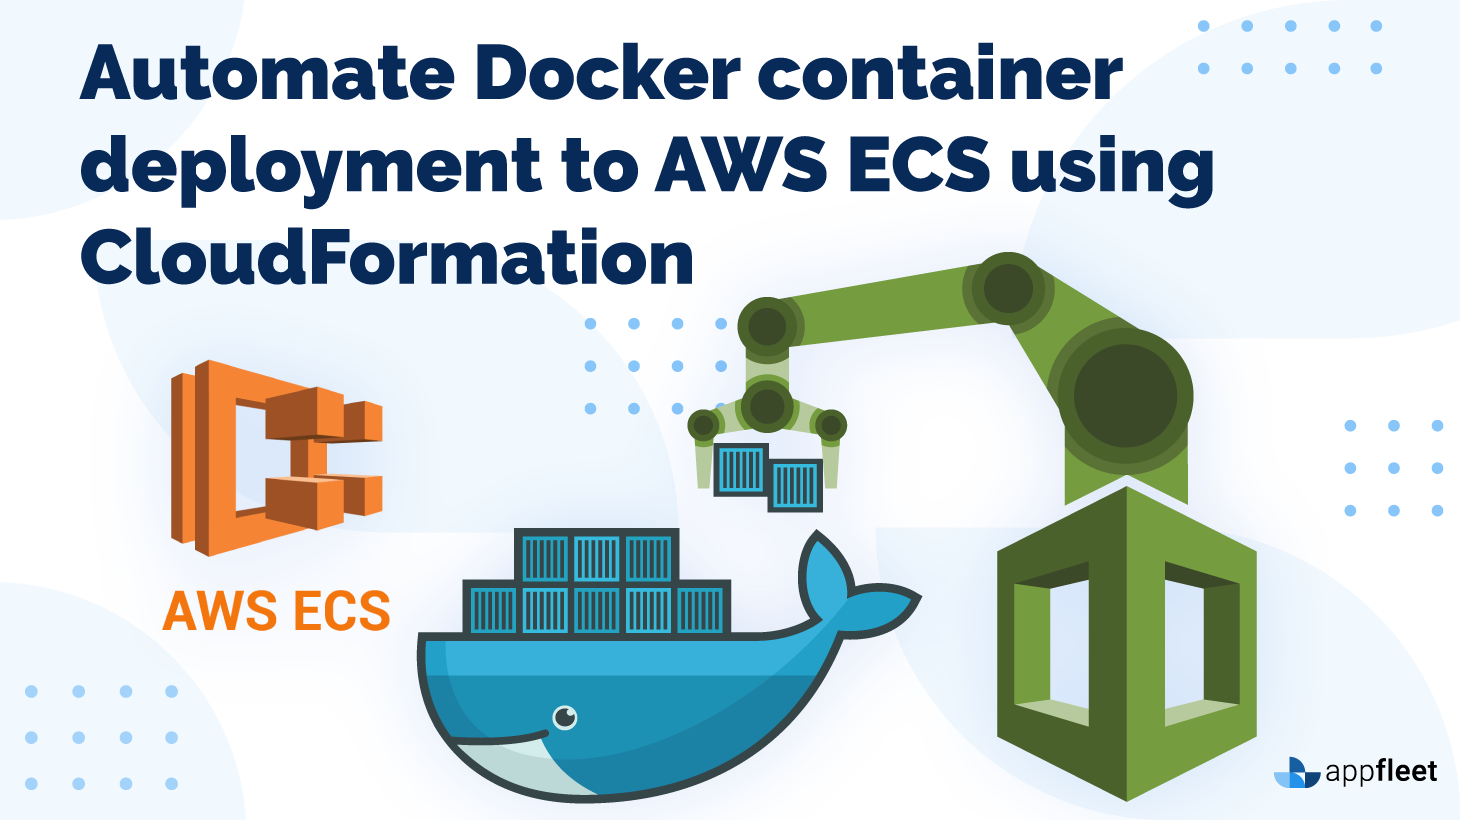 Automate Docker container deployment to AWS ECS using CloudFormation